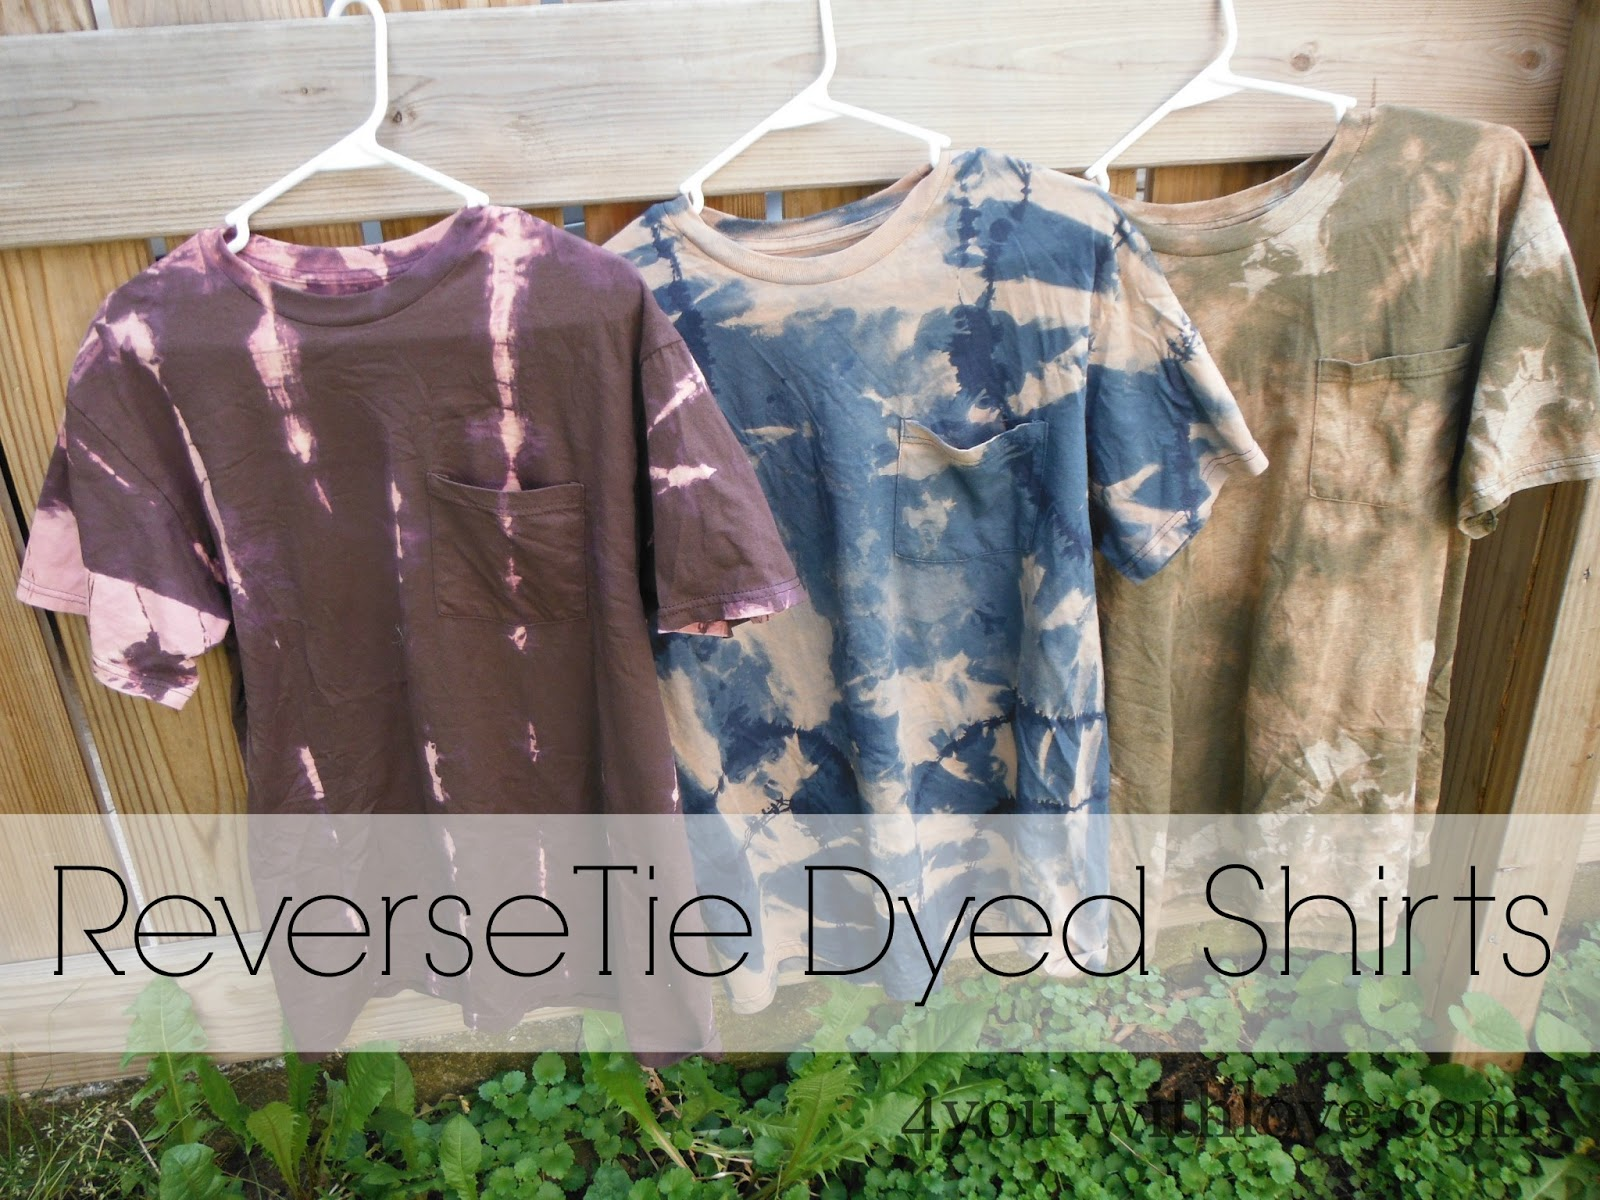 Reverse tie dyed shirts 4 you with love for How to bleach dye a shirt